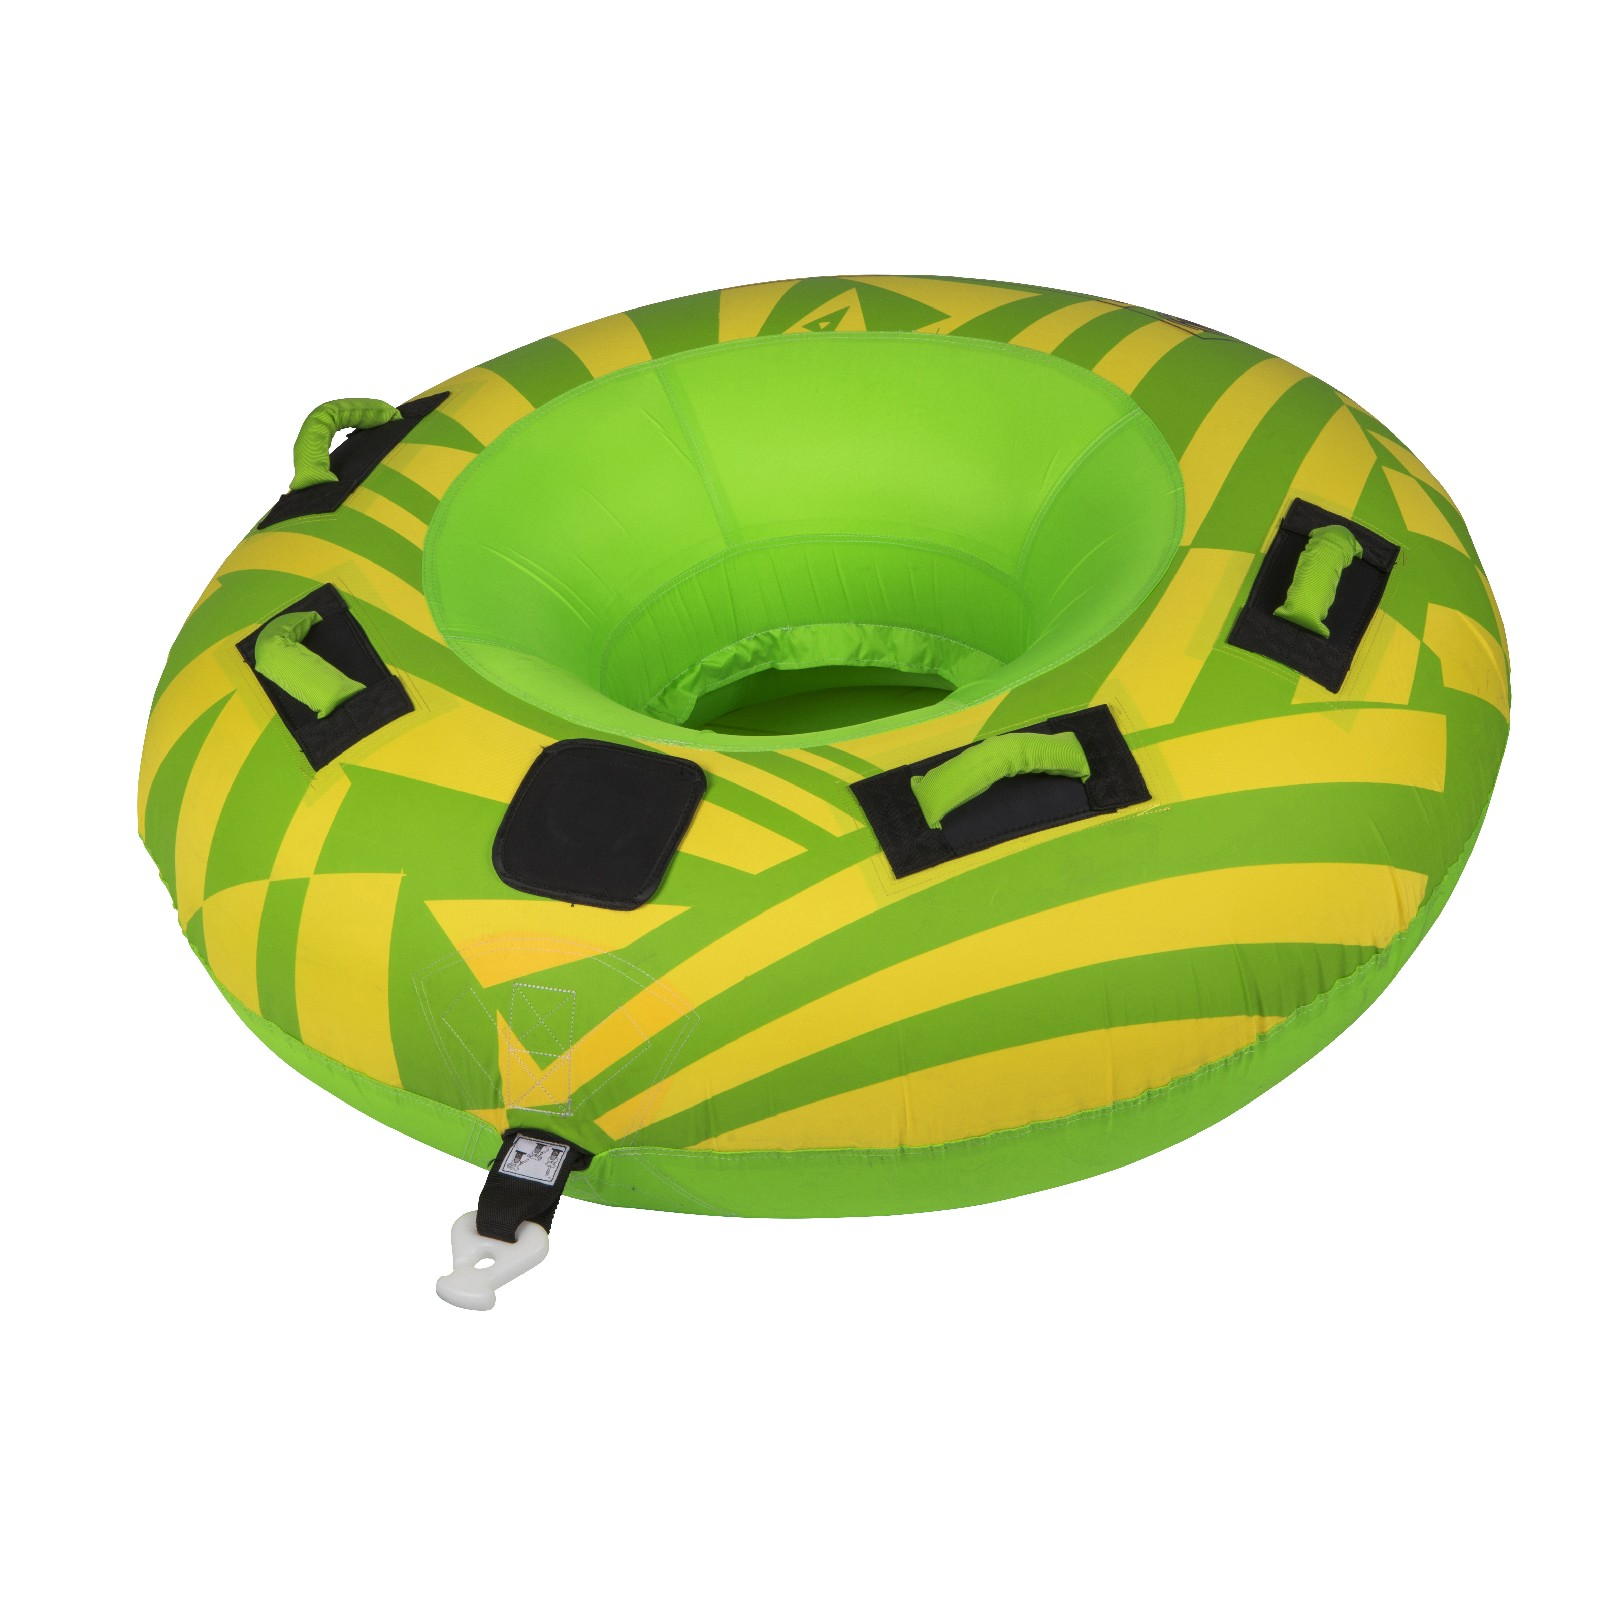 VORTEX TOWABLE TUBE RADAR 2019